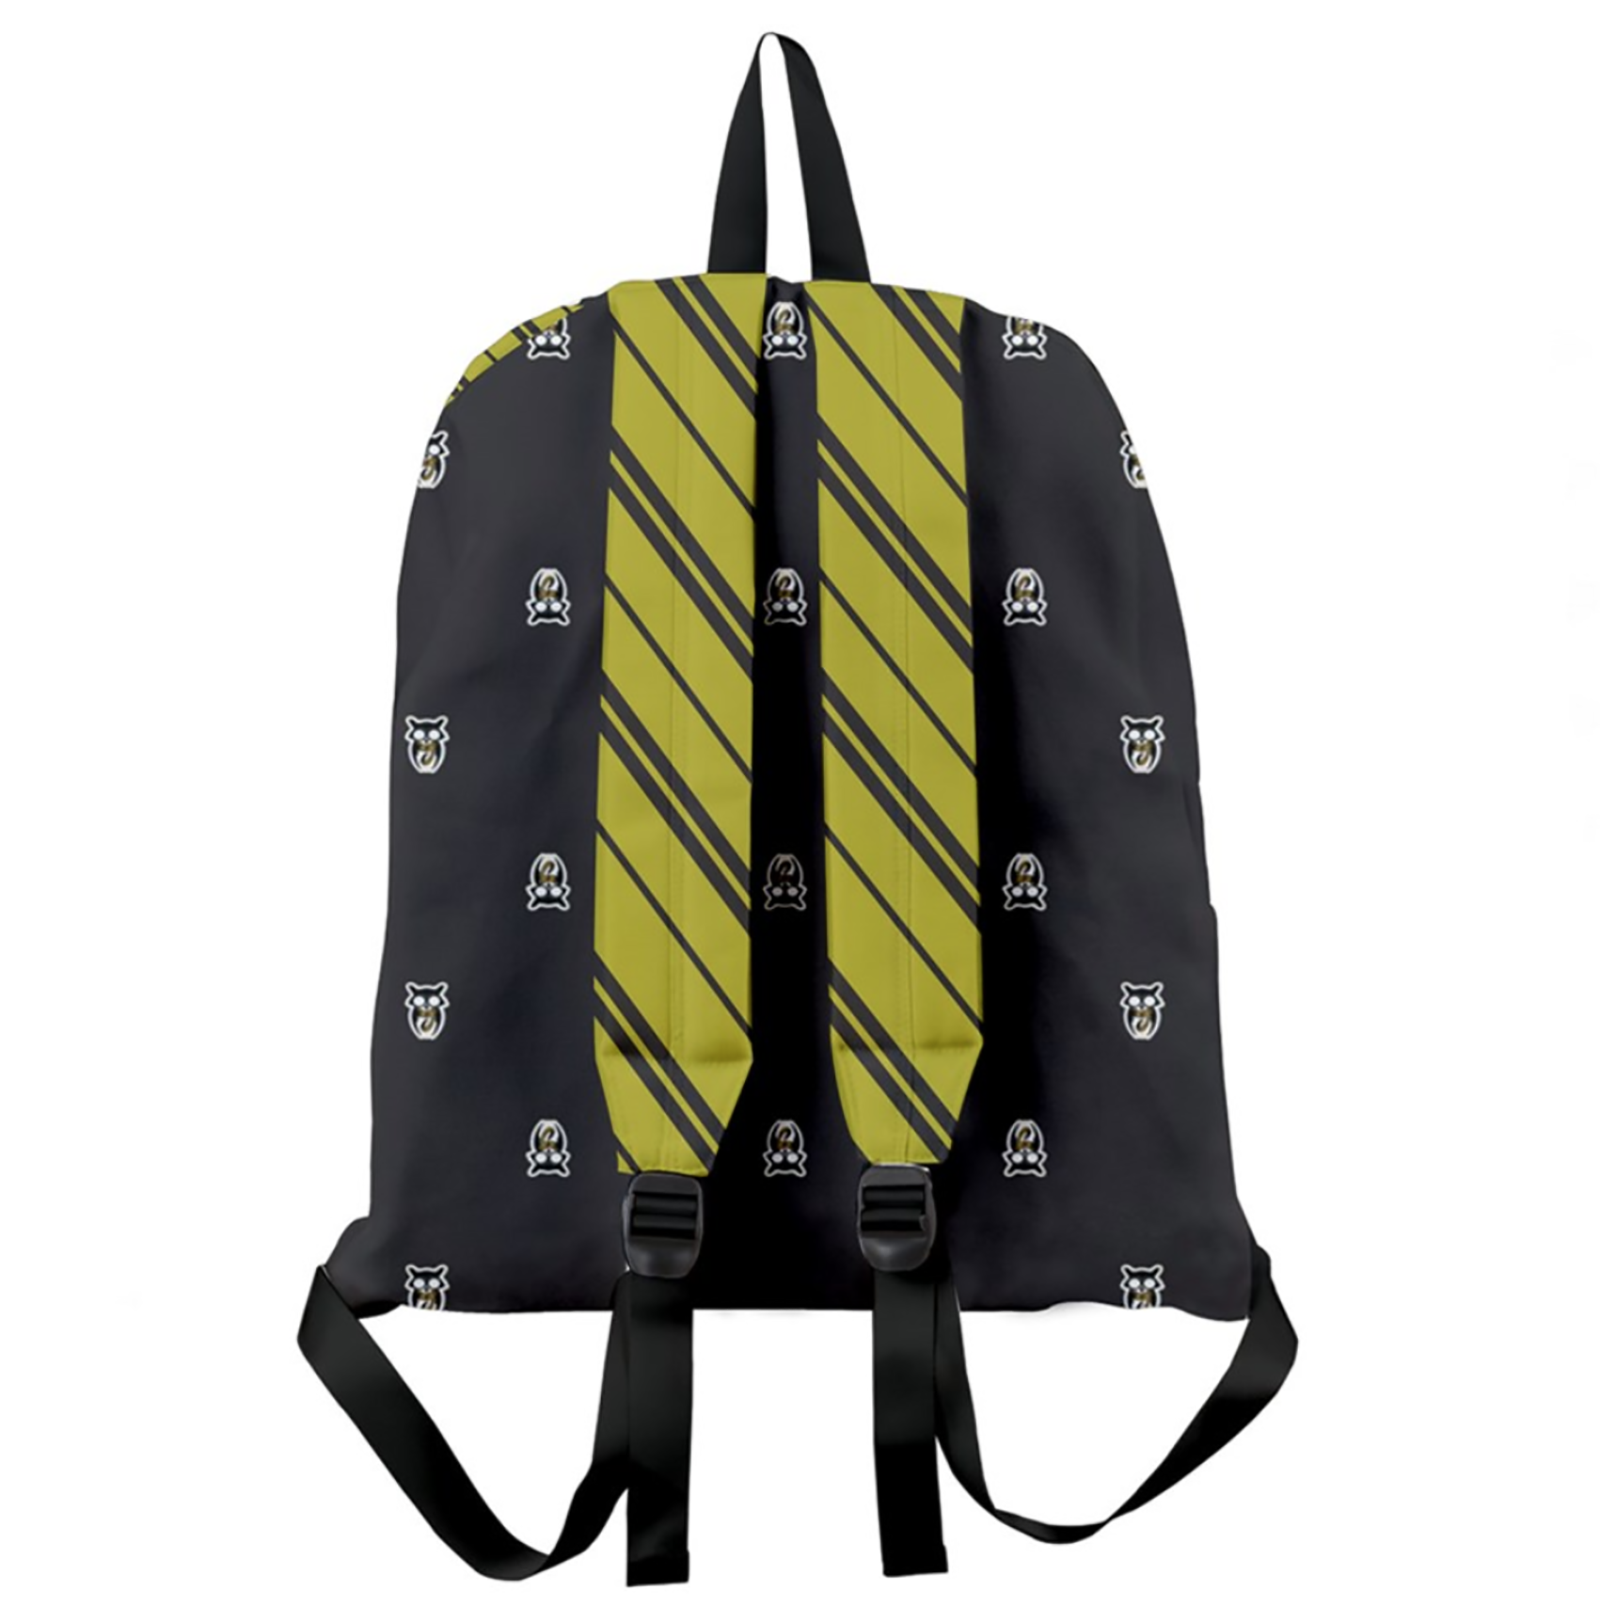 Yellow & Black Giant Backpack - Inspired by Hufflepuff